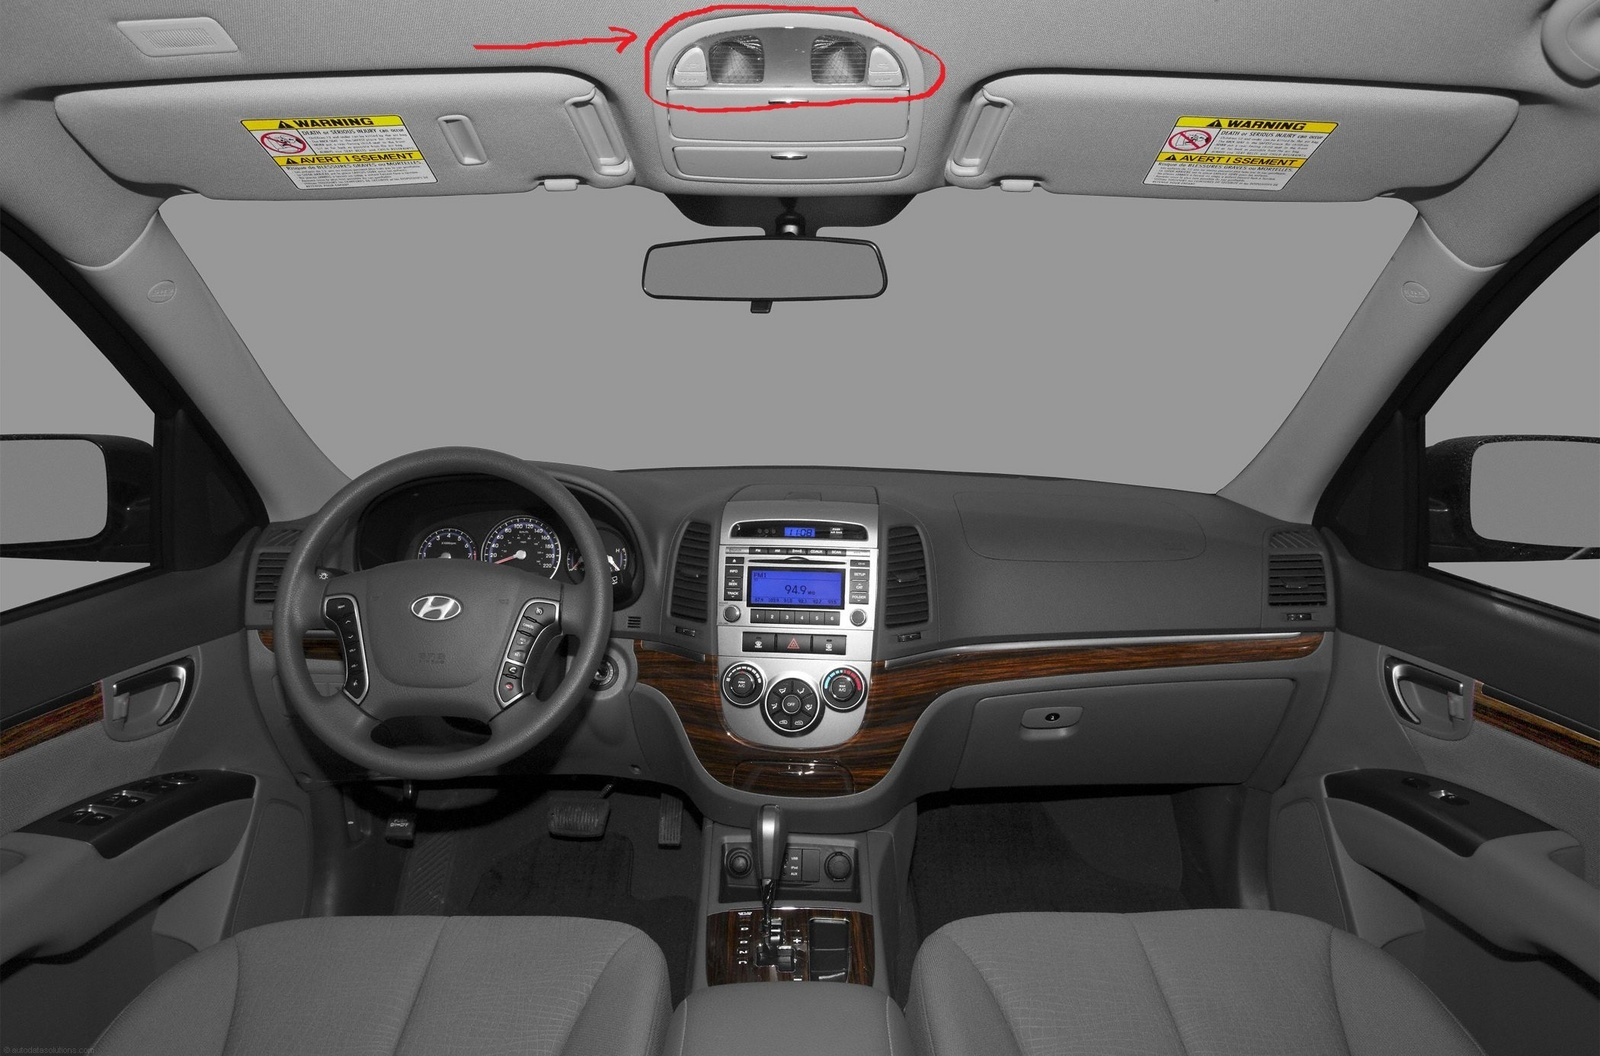 Hyundai Santa Fe Questions - how do i turn on the interior